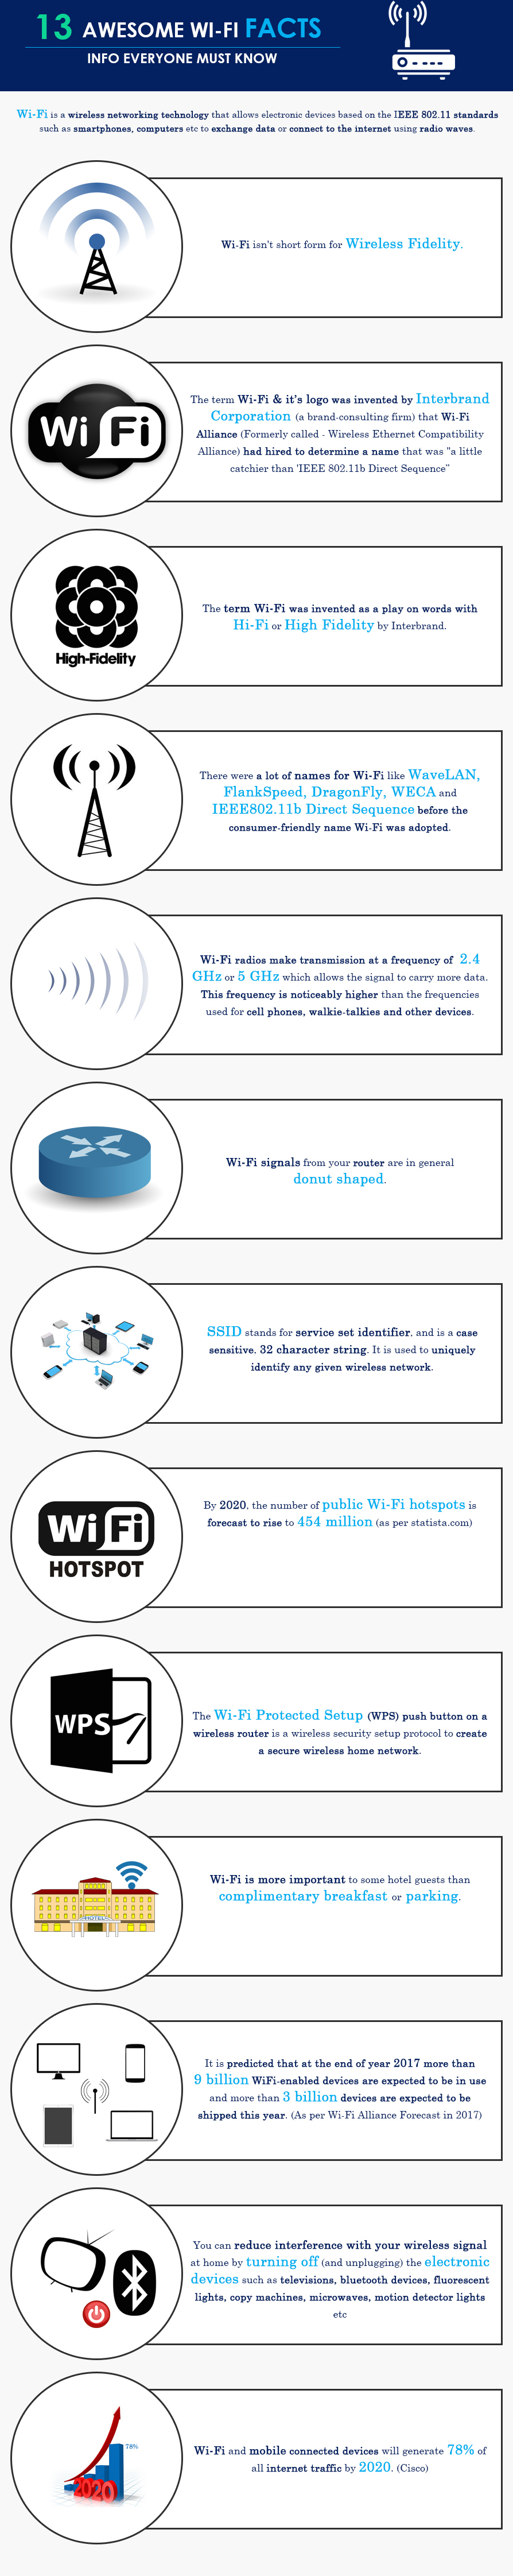 wi-fi facts